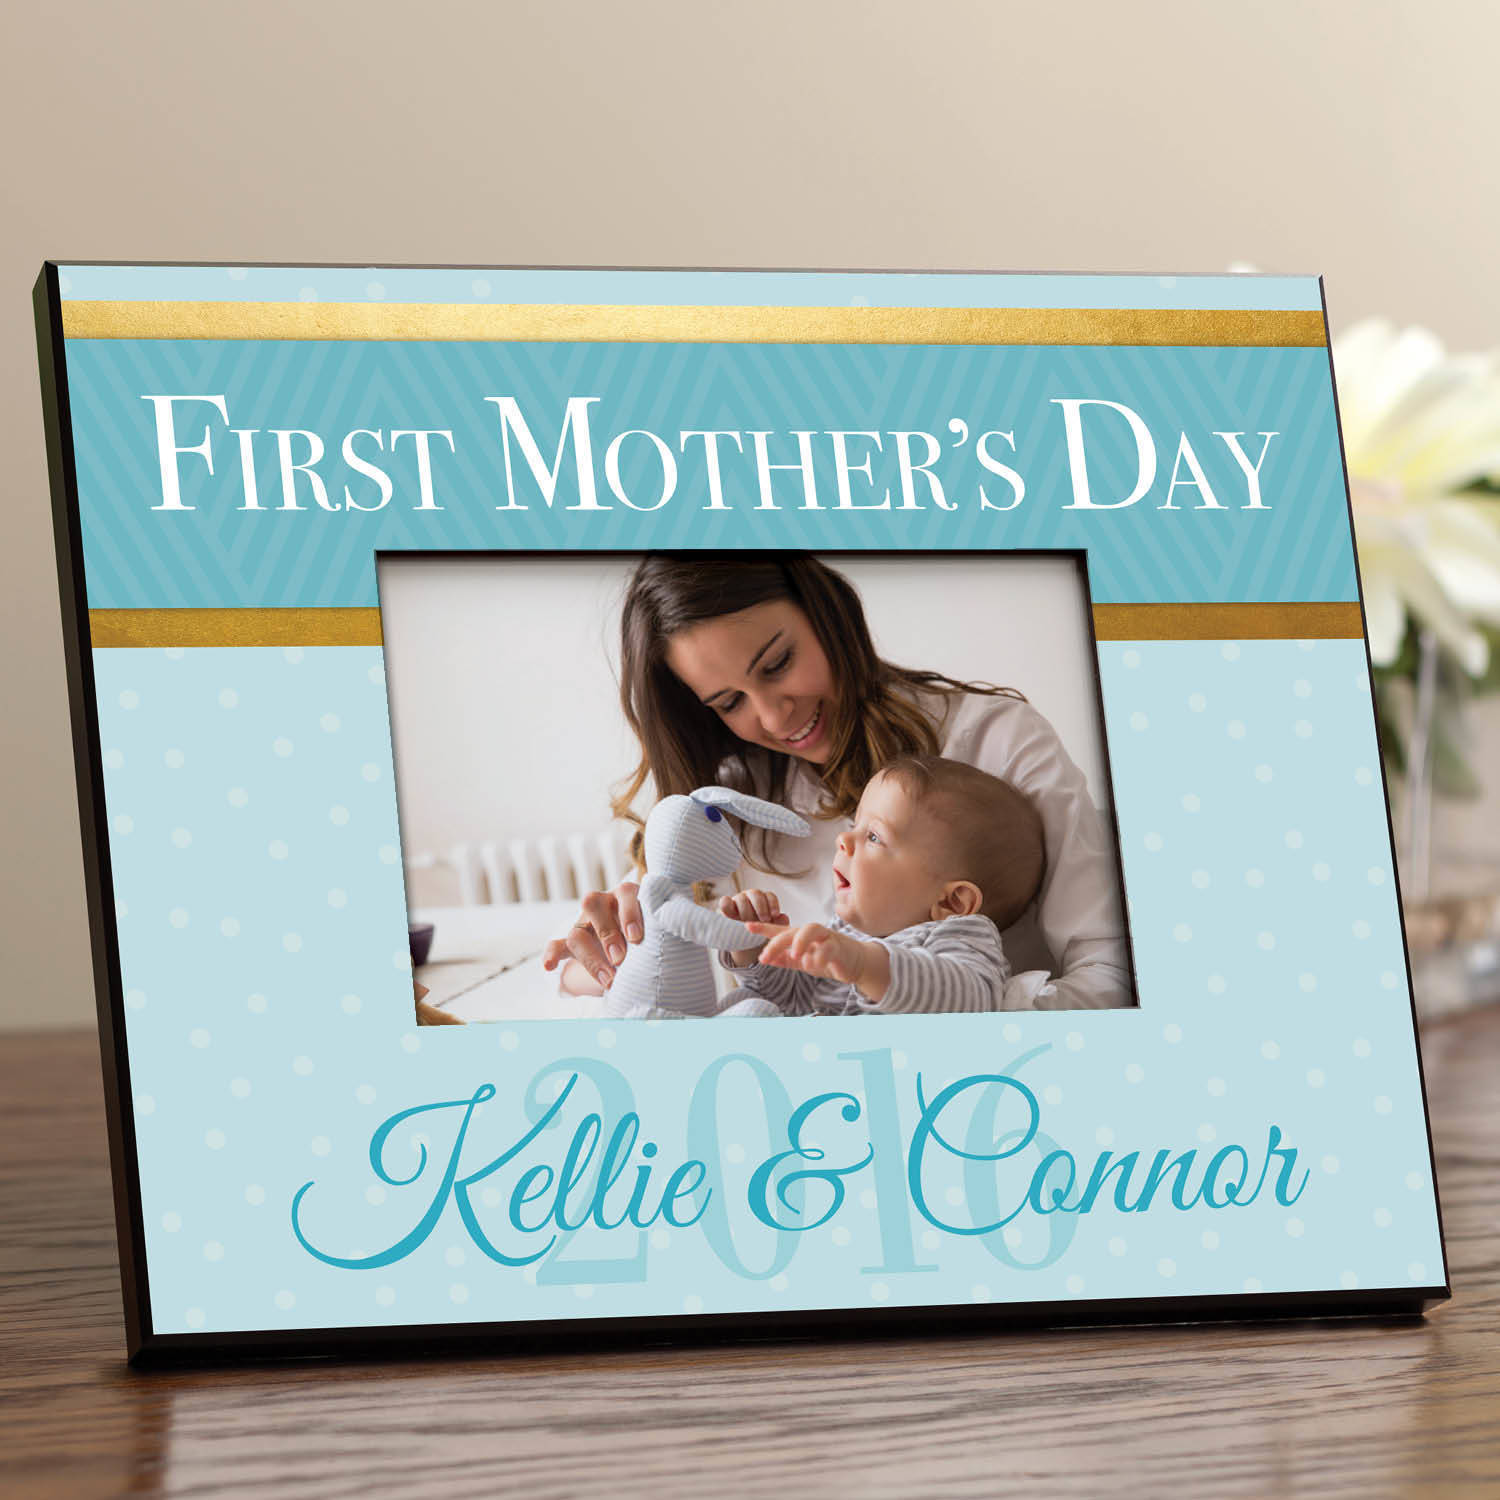 First Mother's Day Personalized Picture Frame, Blue